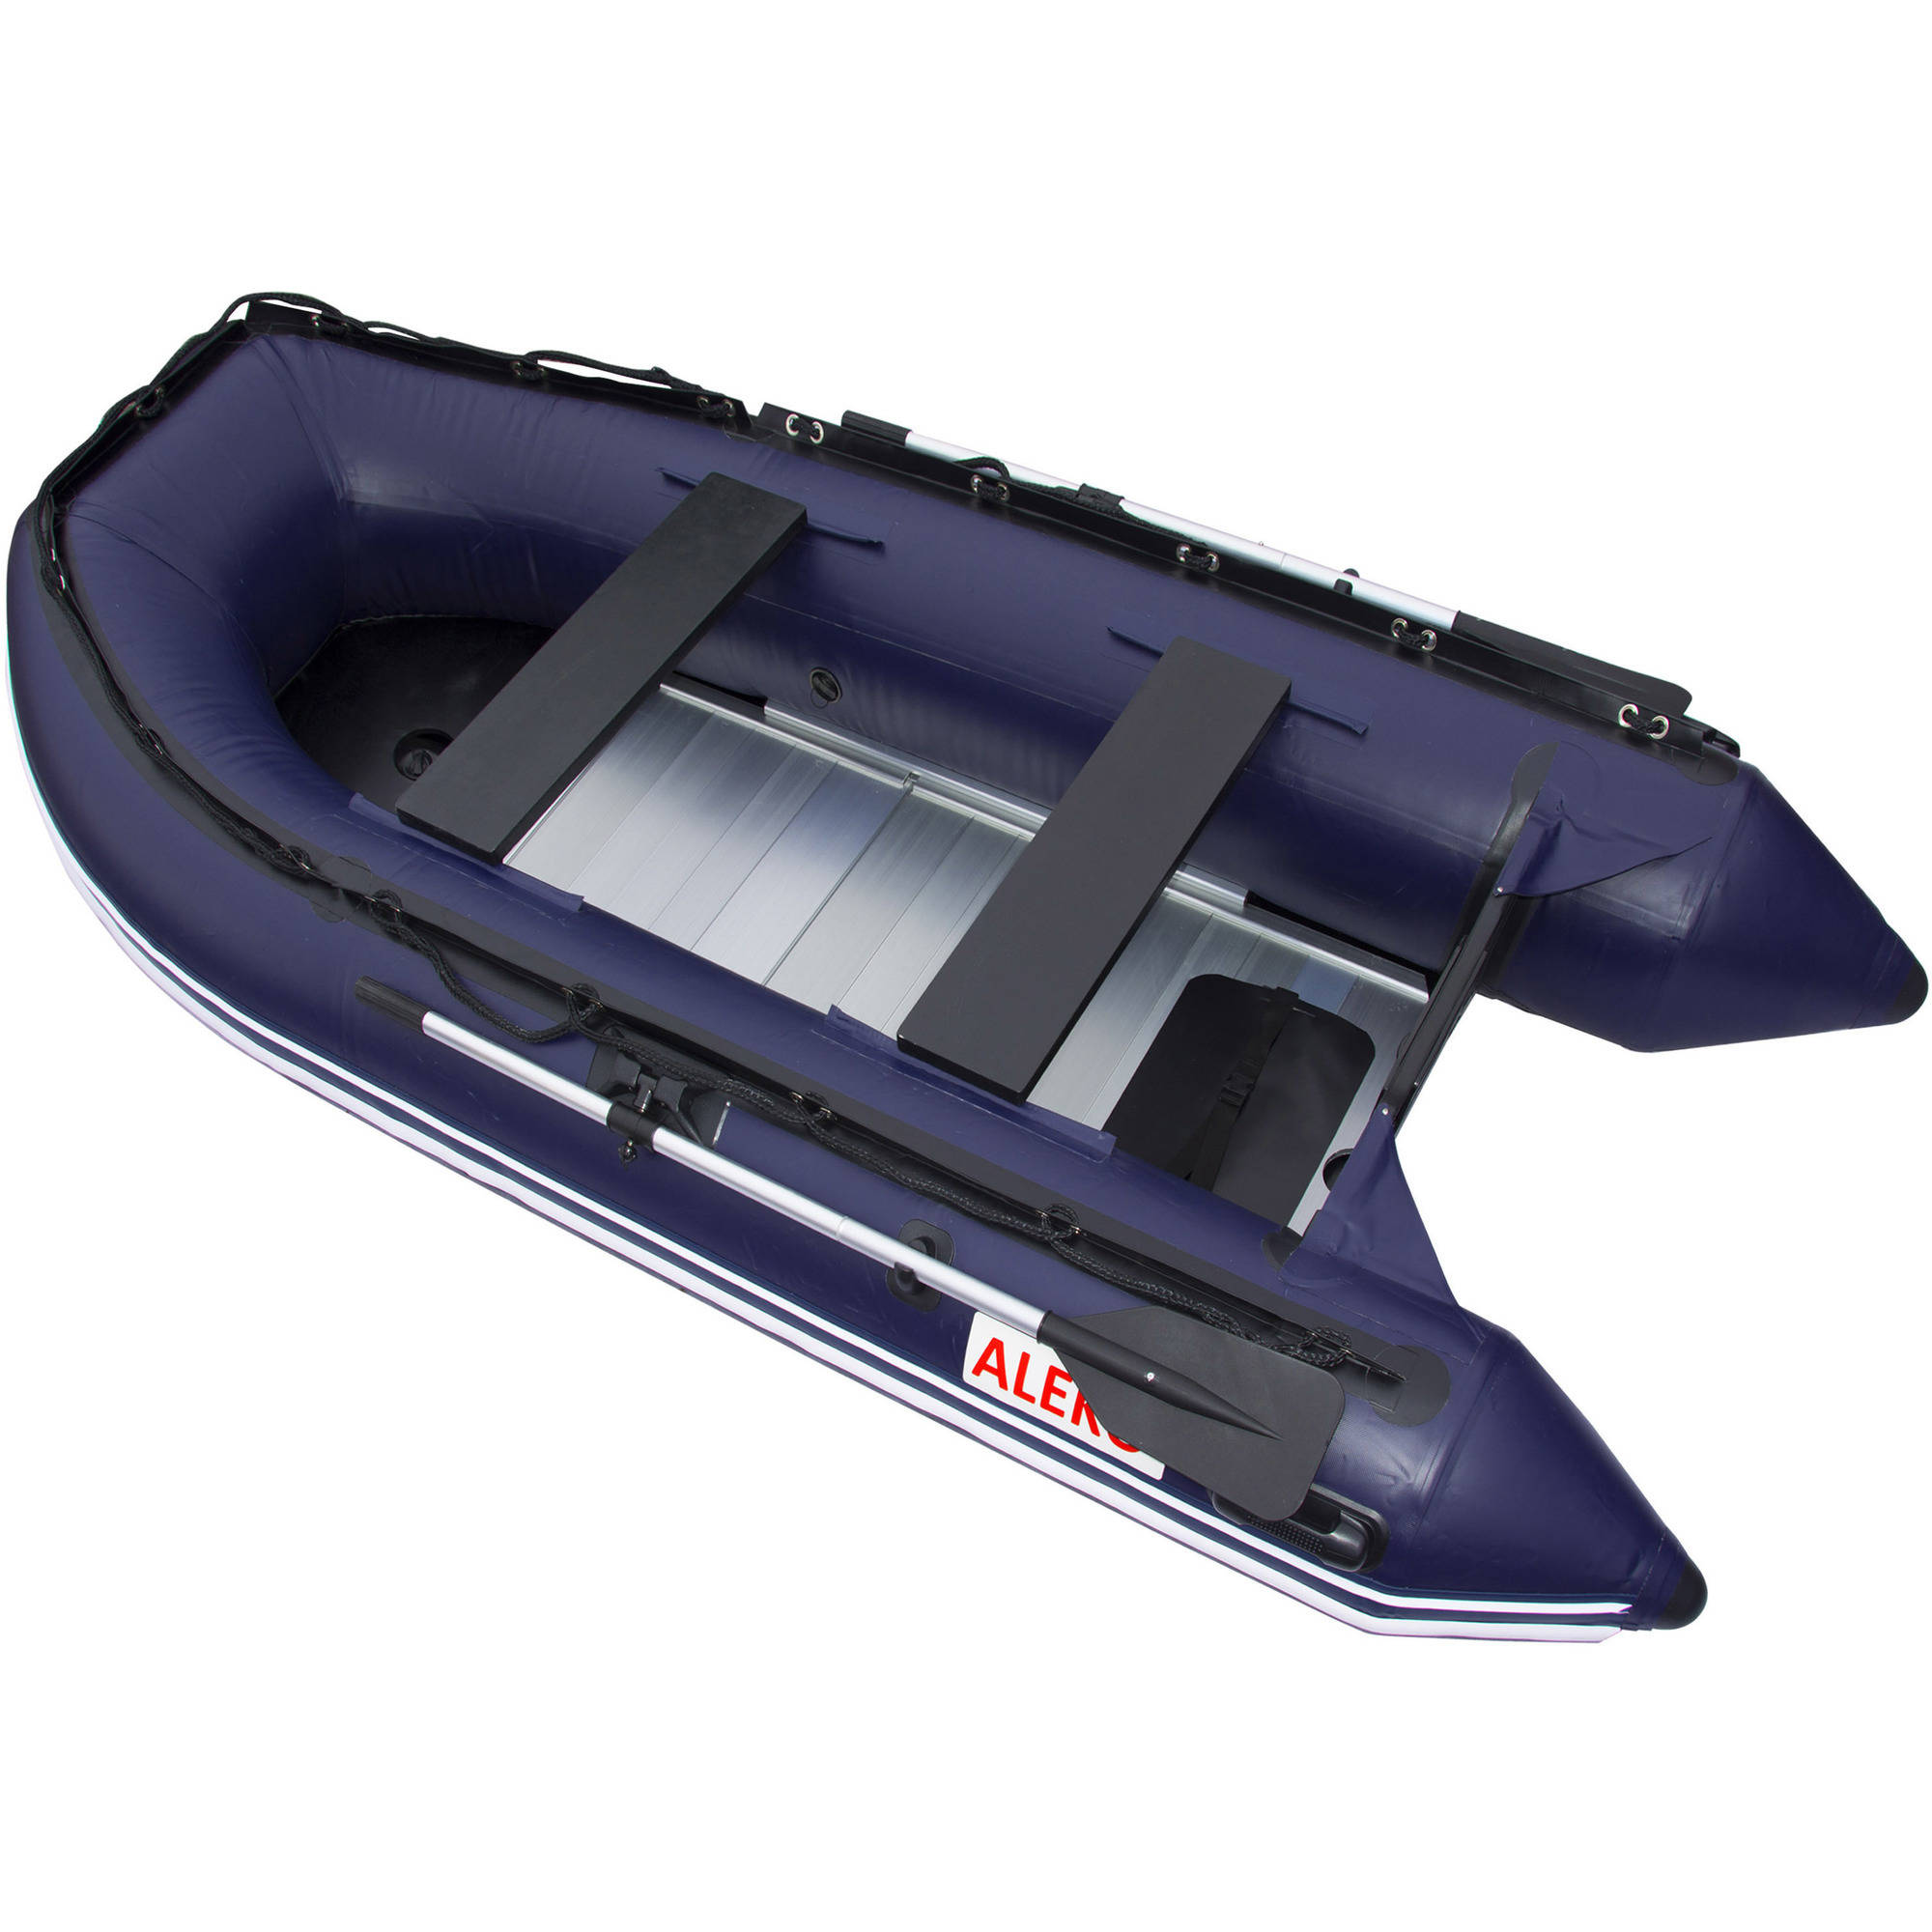 ALEKO Boat 13.8' Inflatable Boat with Aluminum Floor 7 Person Fishing Boat BT420R, Blue by ALEKO